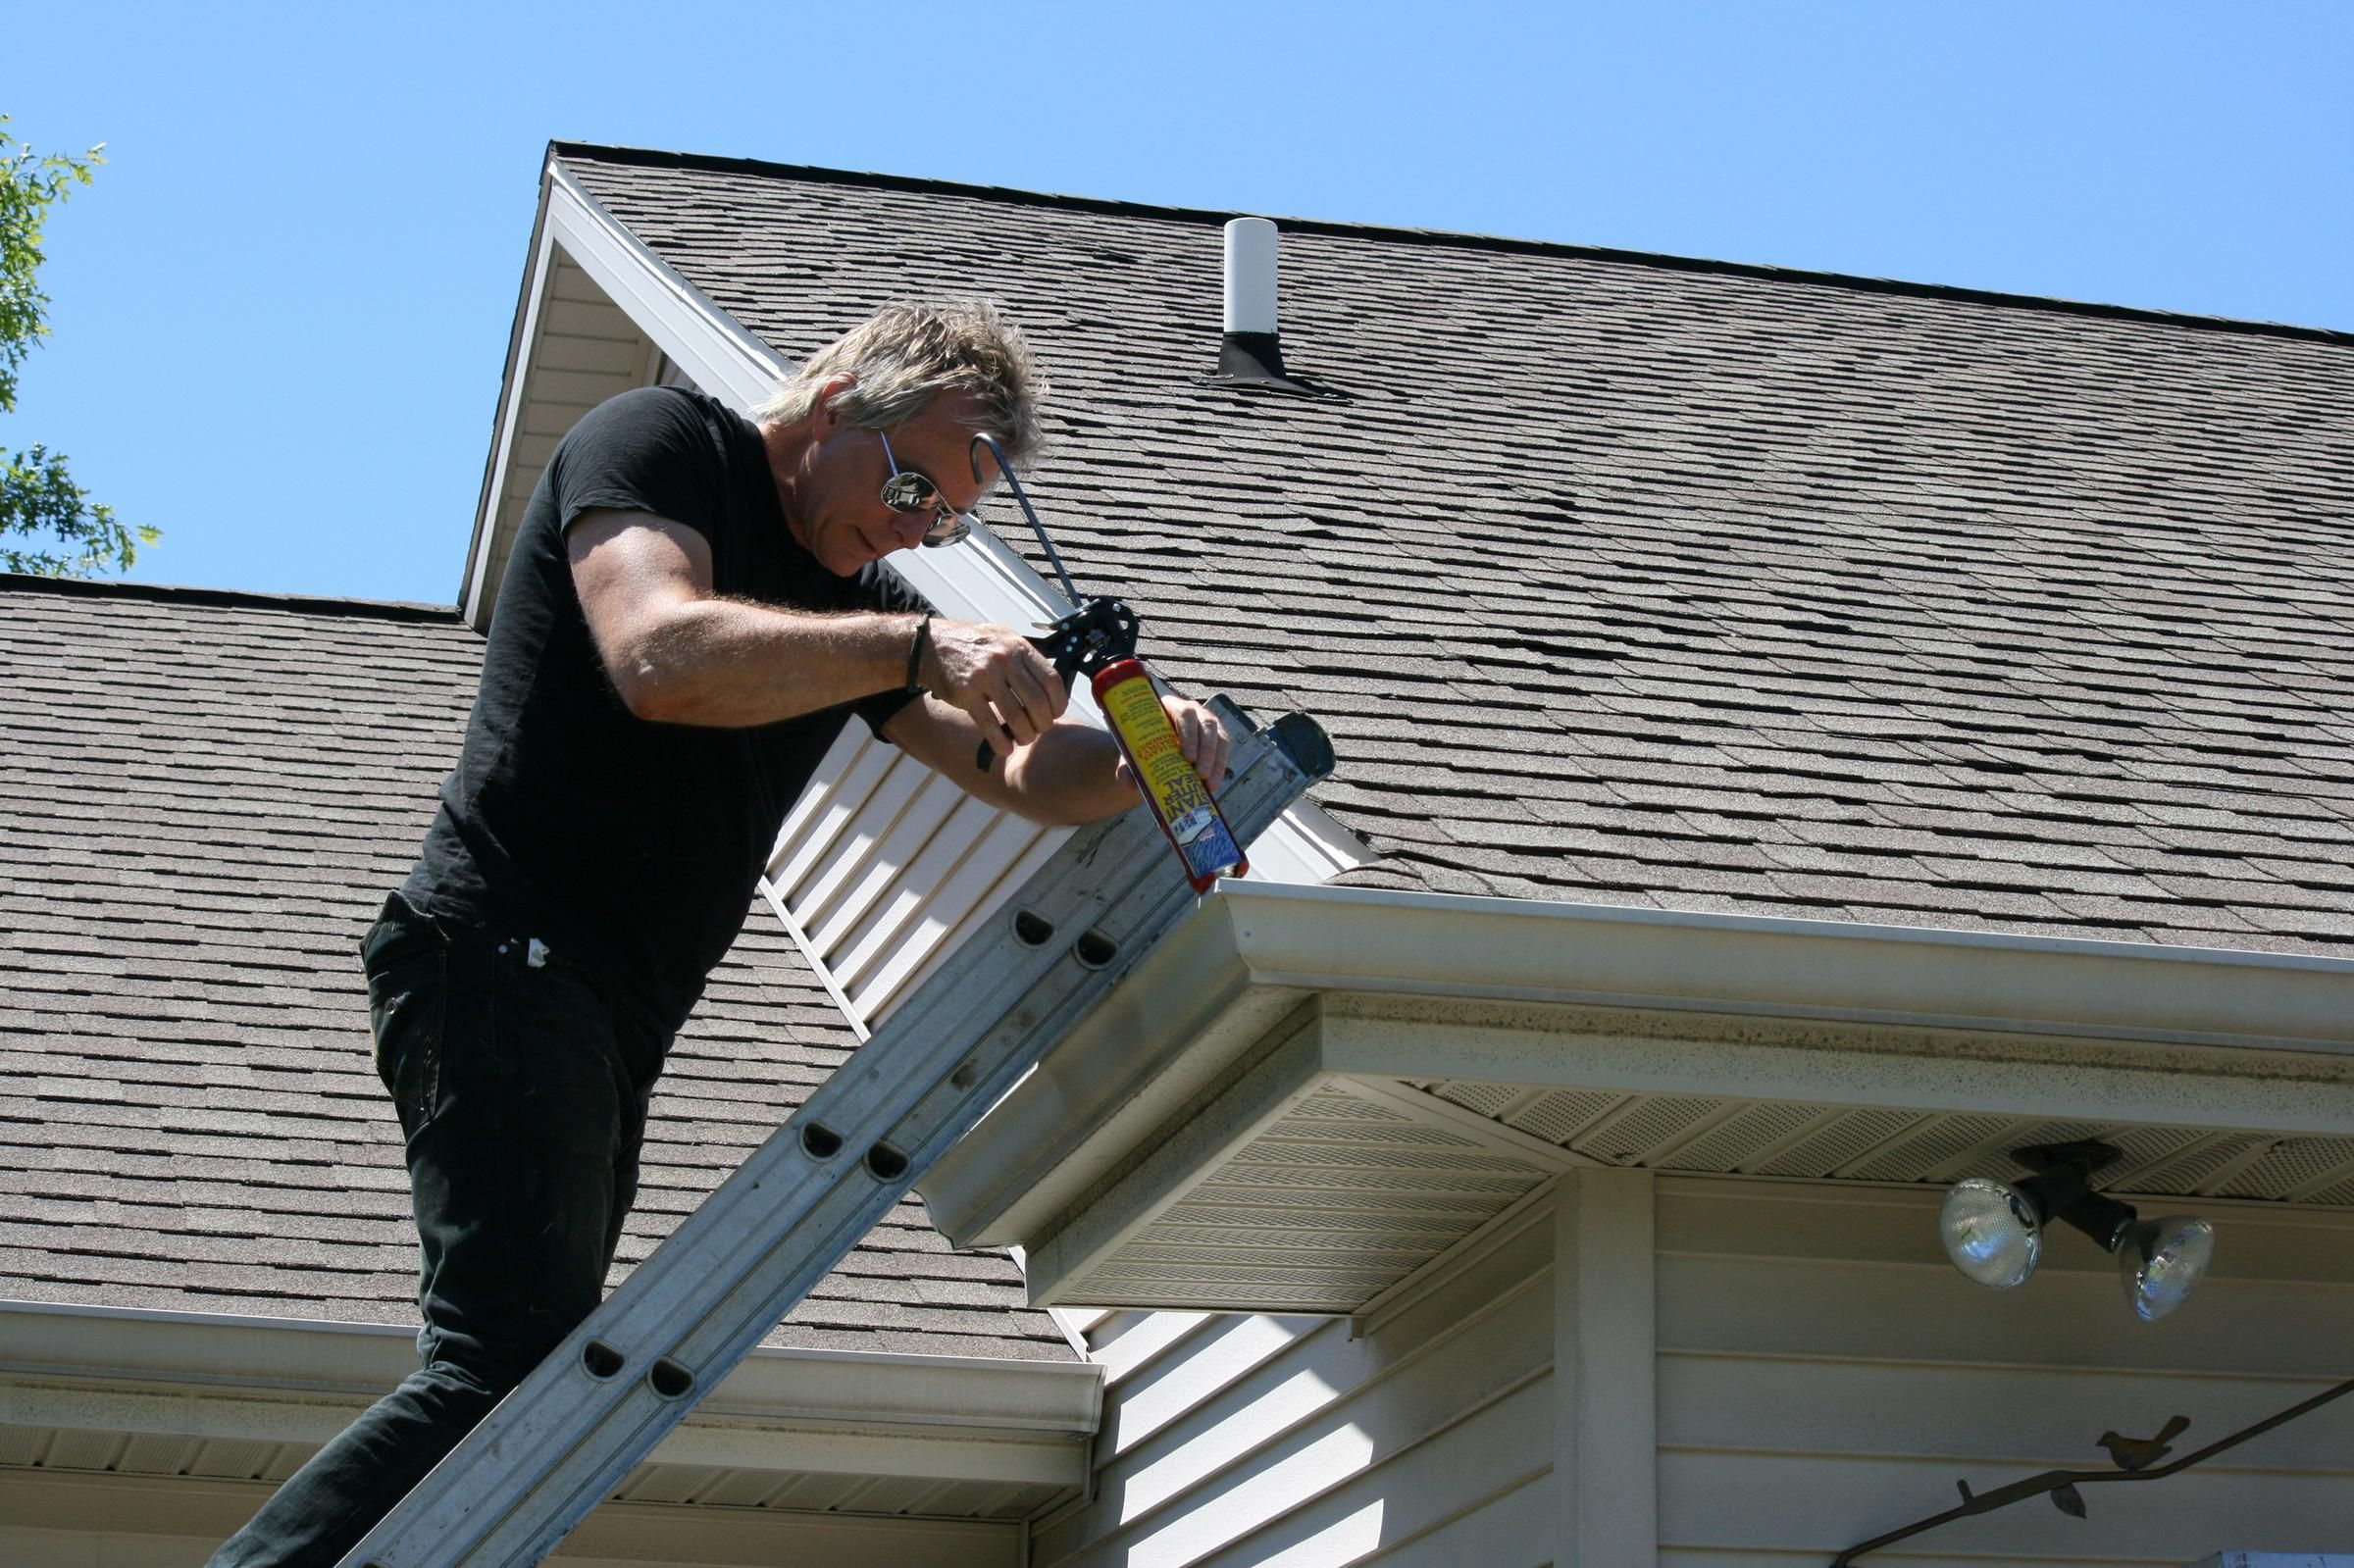 The Easy Ways To Deal With Your Roof Problems With Images Gutters Gutter Repair Roof Problems